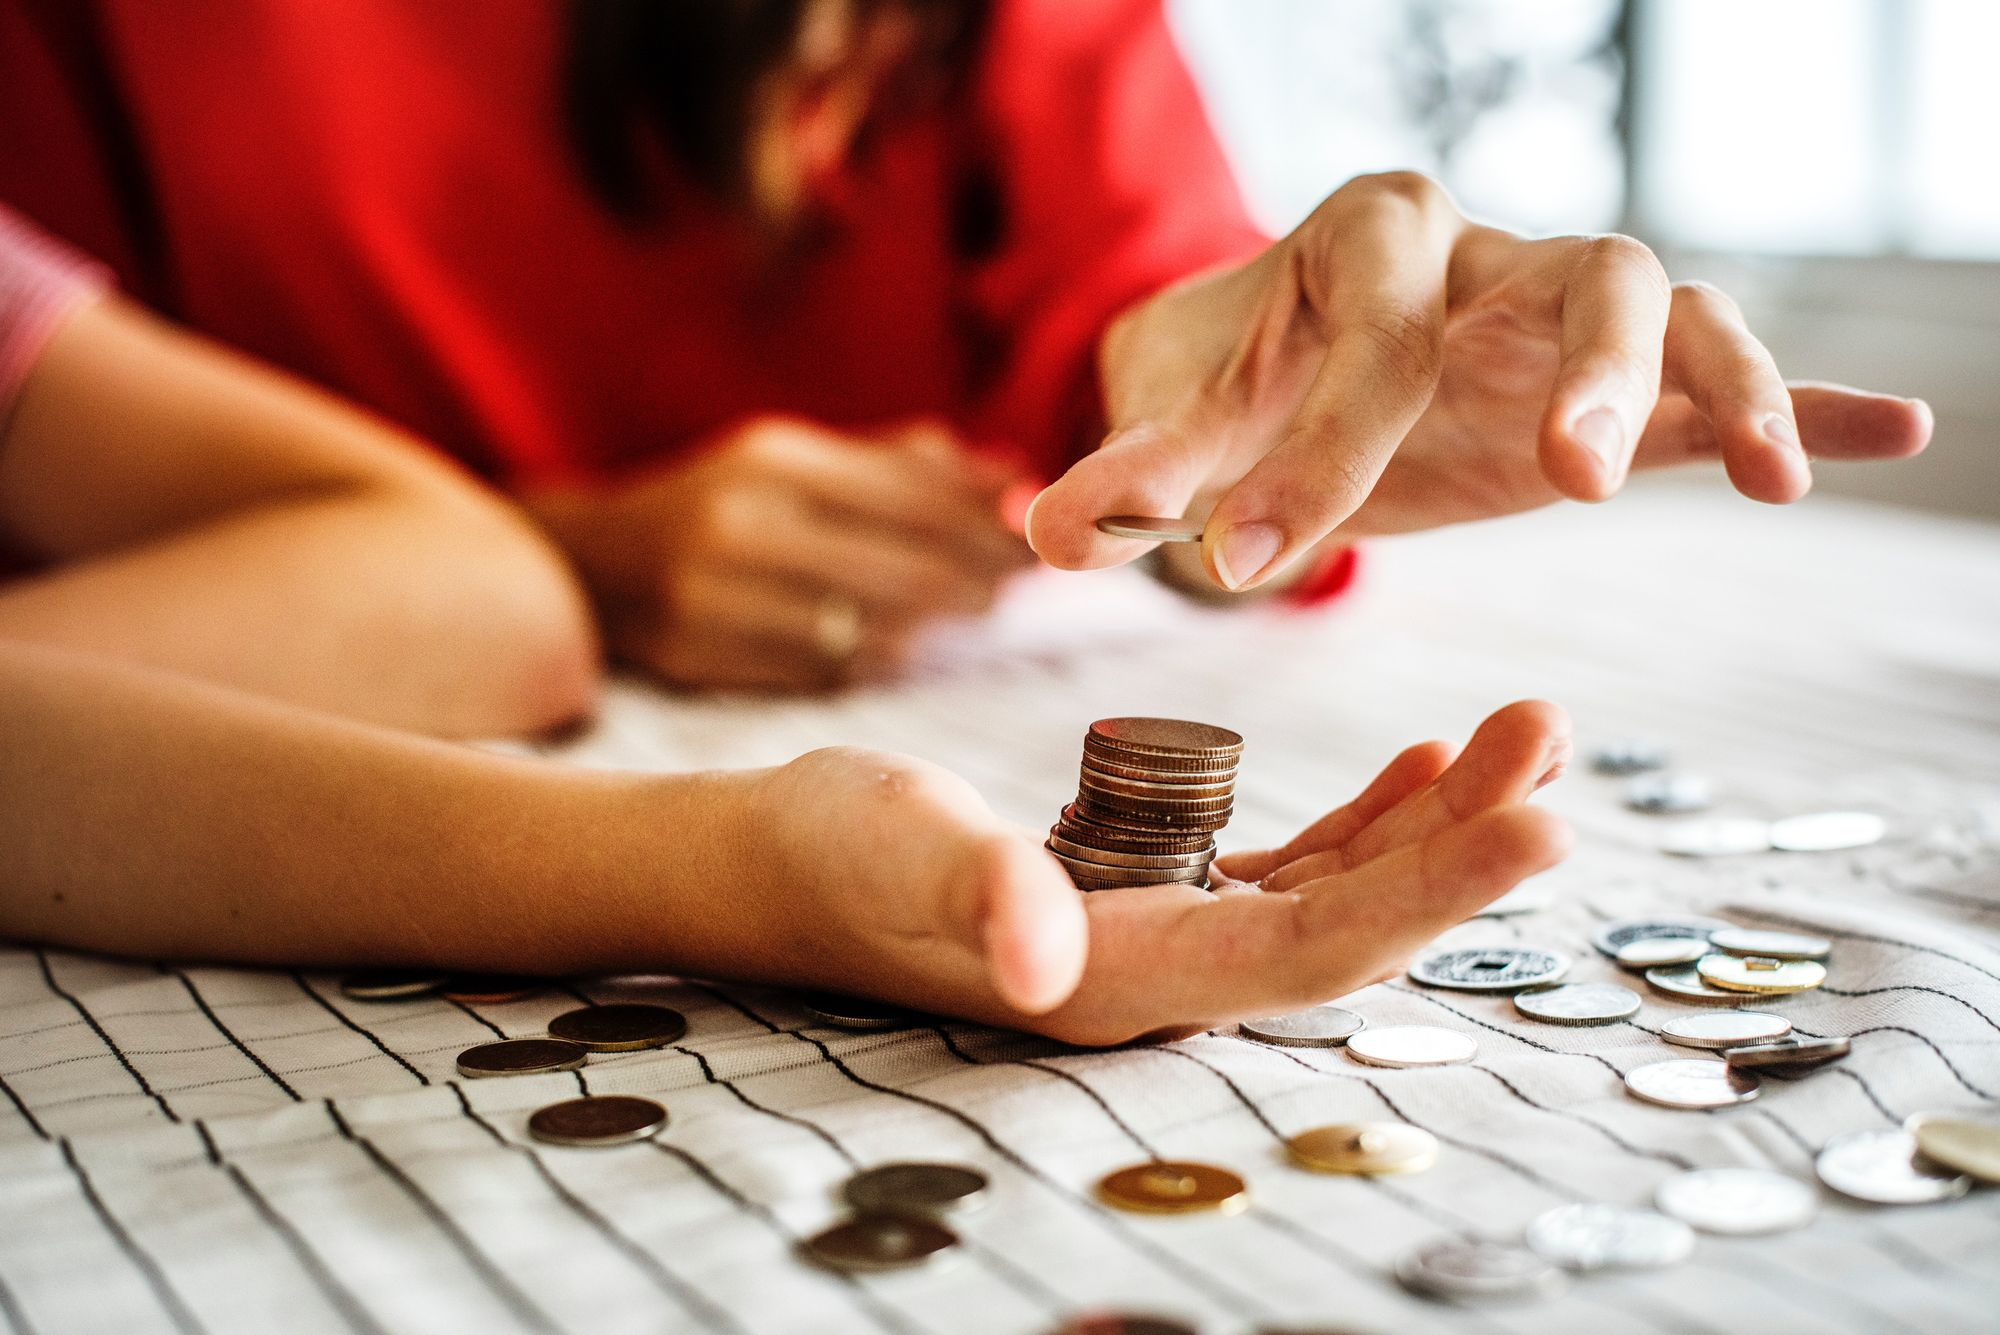 Easy Ways to Invest and Make Your Money Work For You